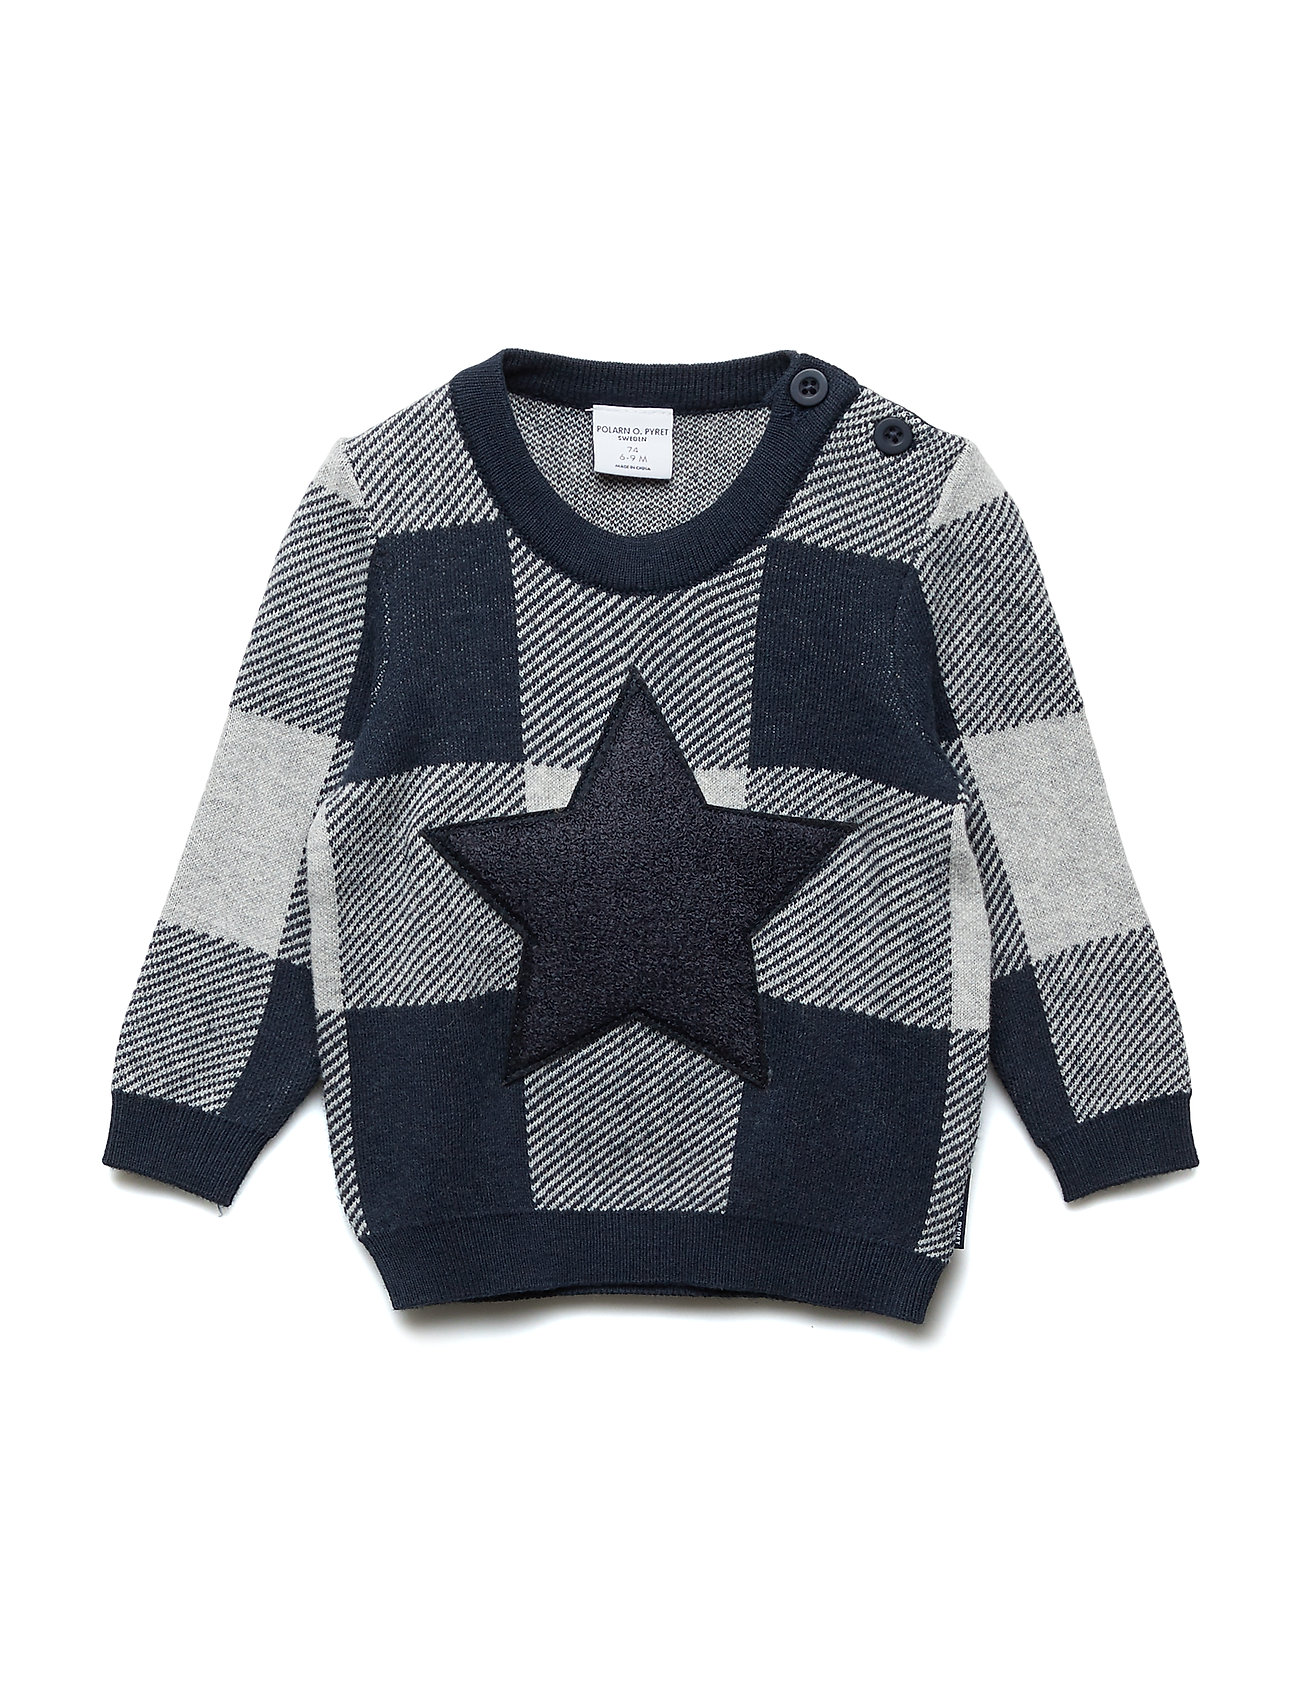 Polarn O. Pyret Sweater Knitted Baby